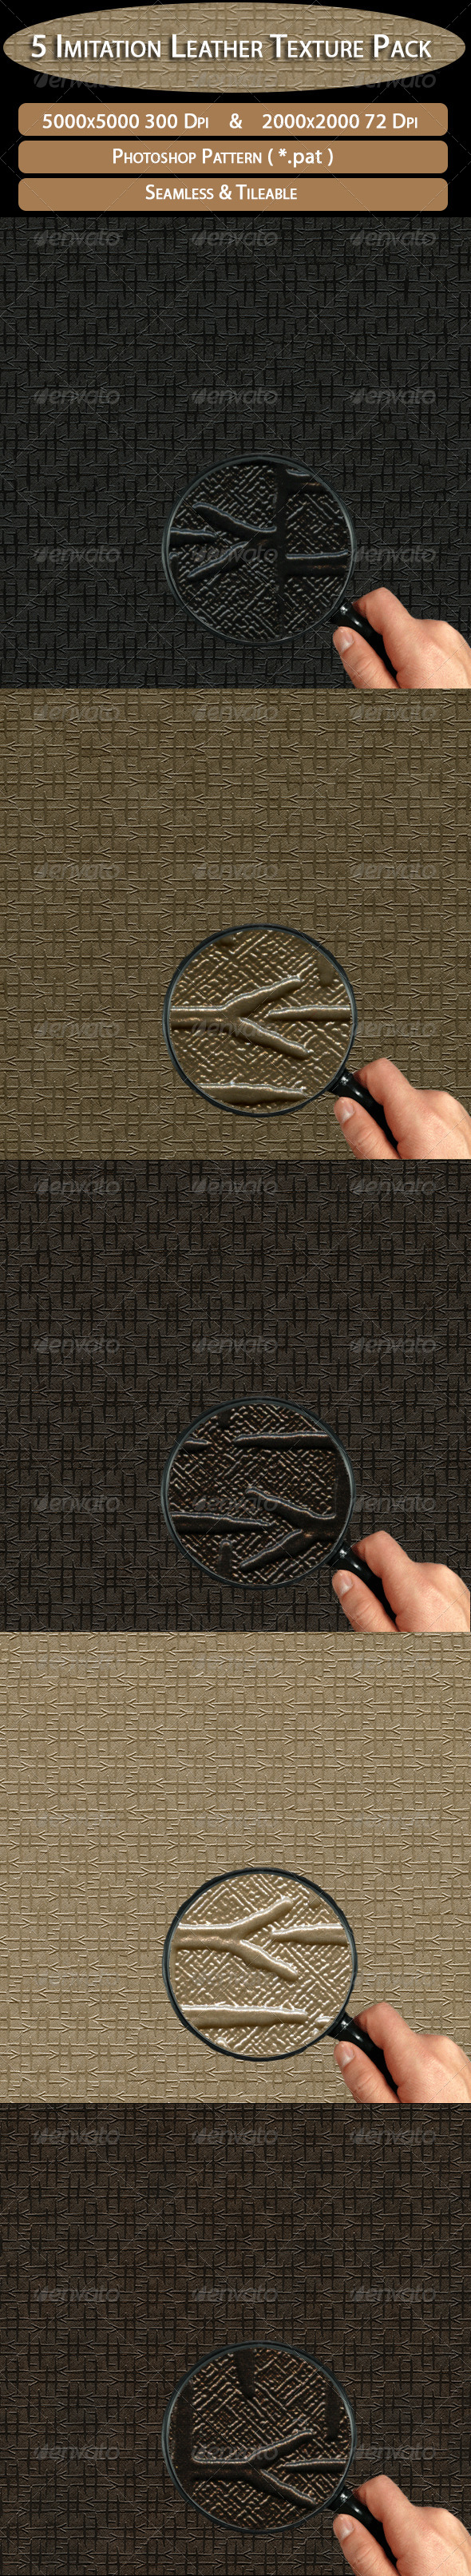 GraphicRiver 5 Imitation Leather Texture Pack 4508624